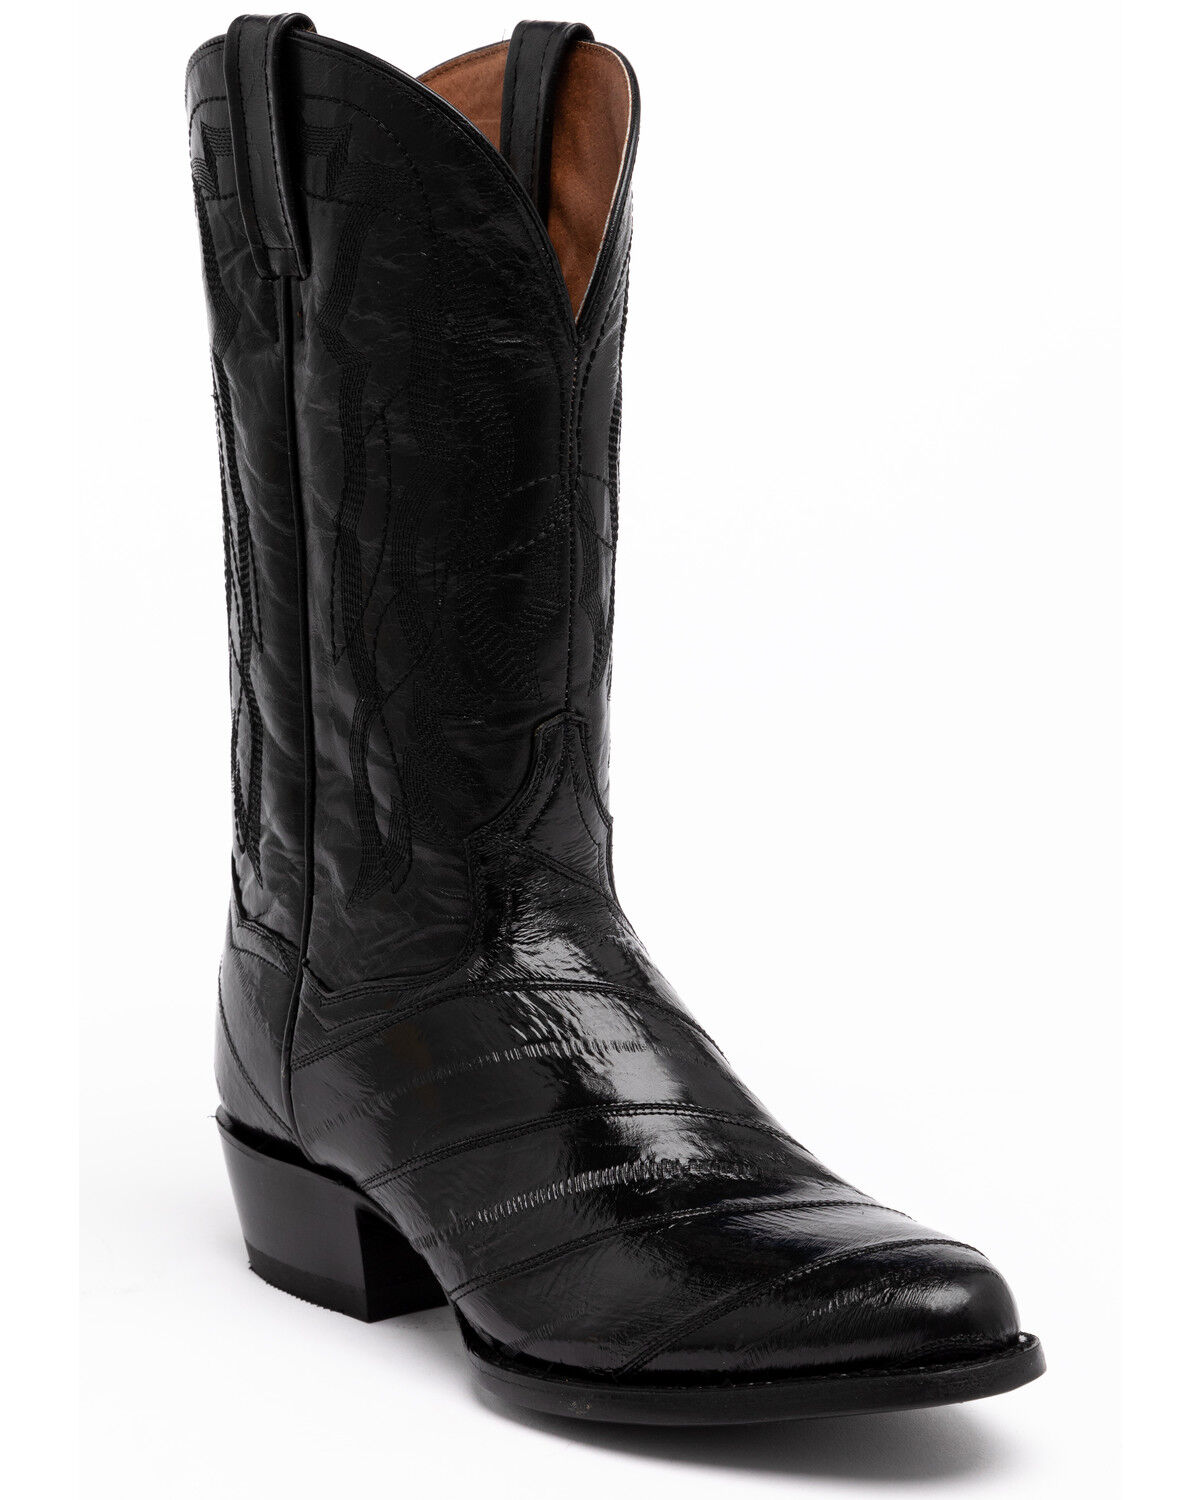 New Old FRYE Women/'s Dorado Riding Boot Whiskey Smooth Polished Size 7 MSRP $648